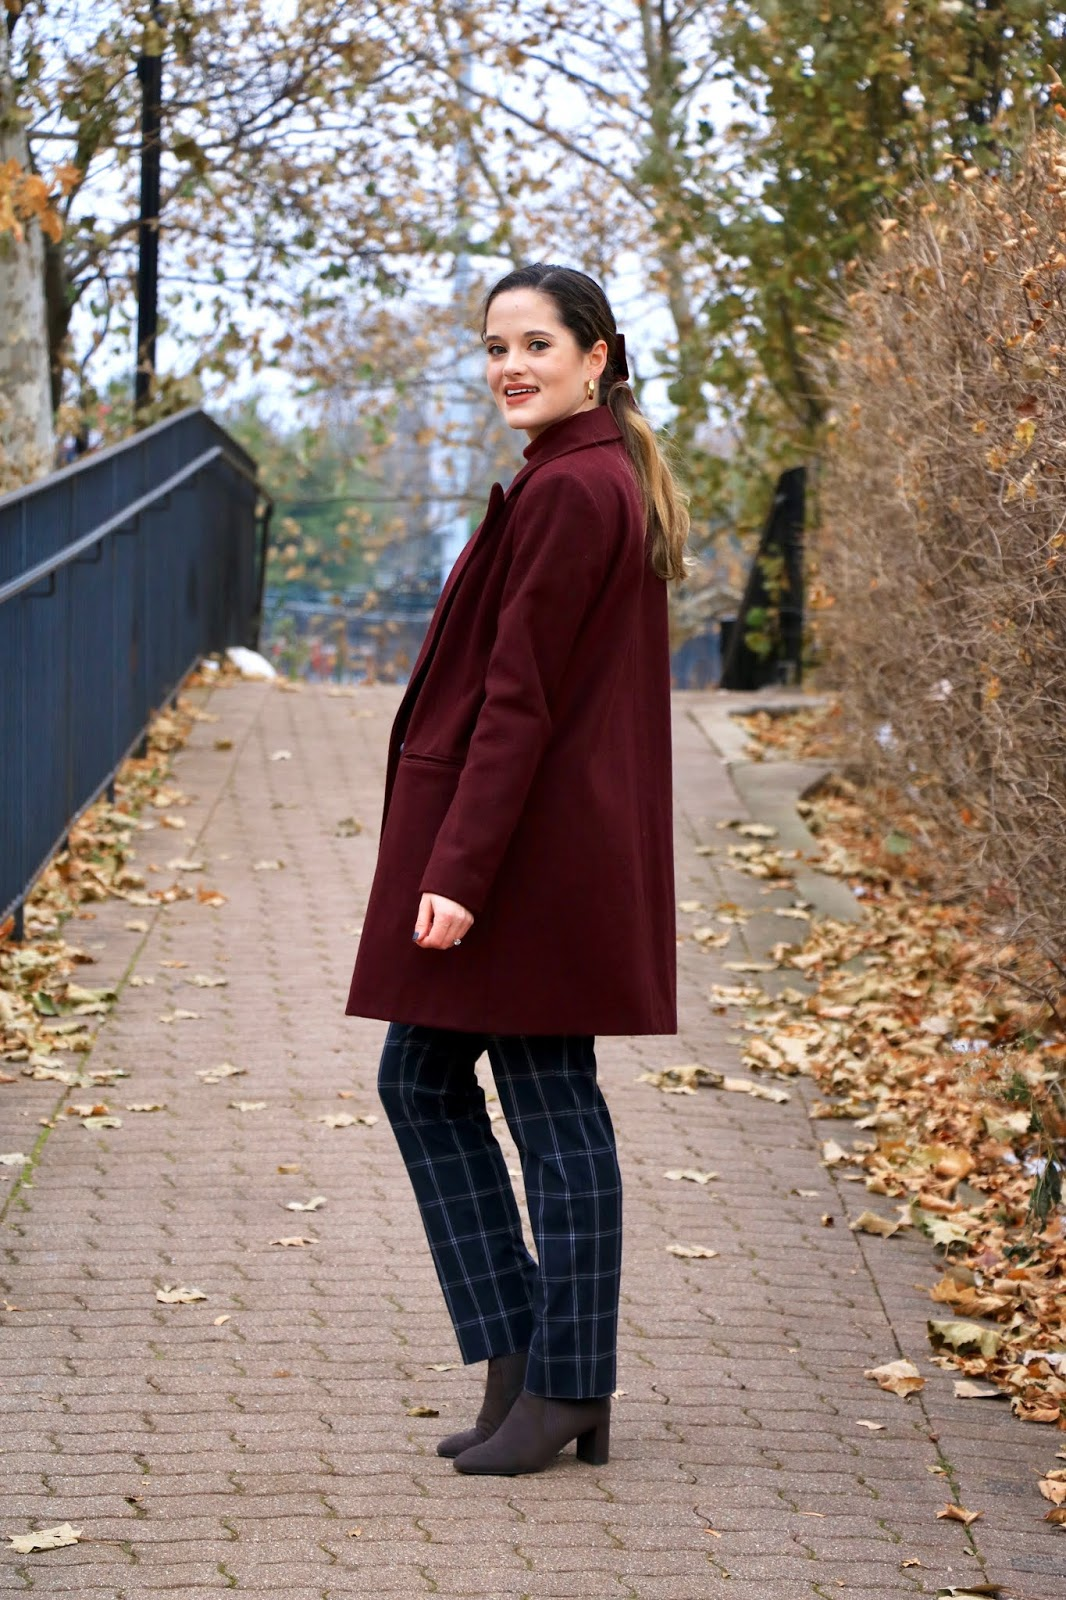 Nyc fashion blogger Kathleen Harper's cute outfit ideas for work.